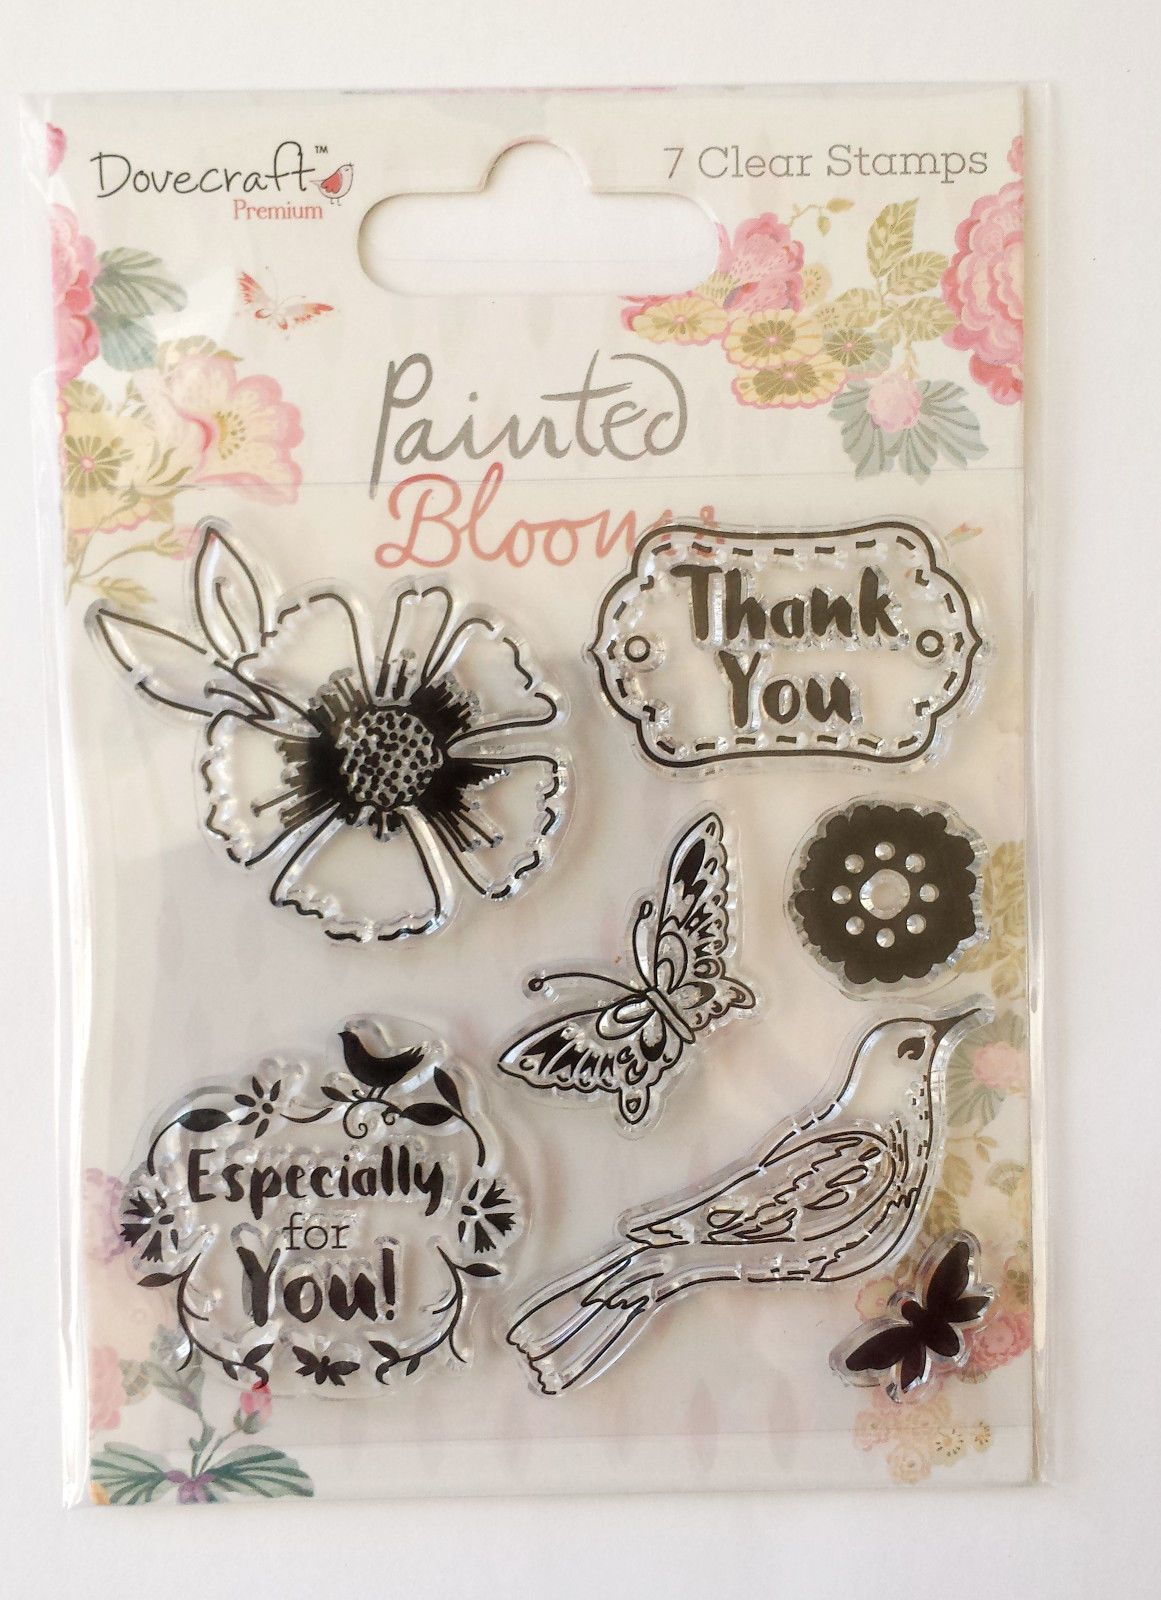 Dovecraft Painted Blooms  Thank you  Clear Stamps